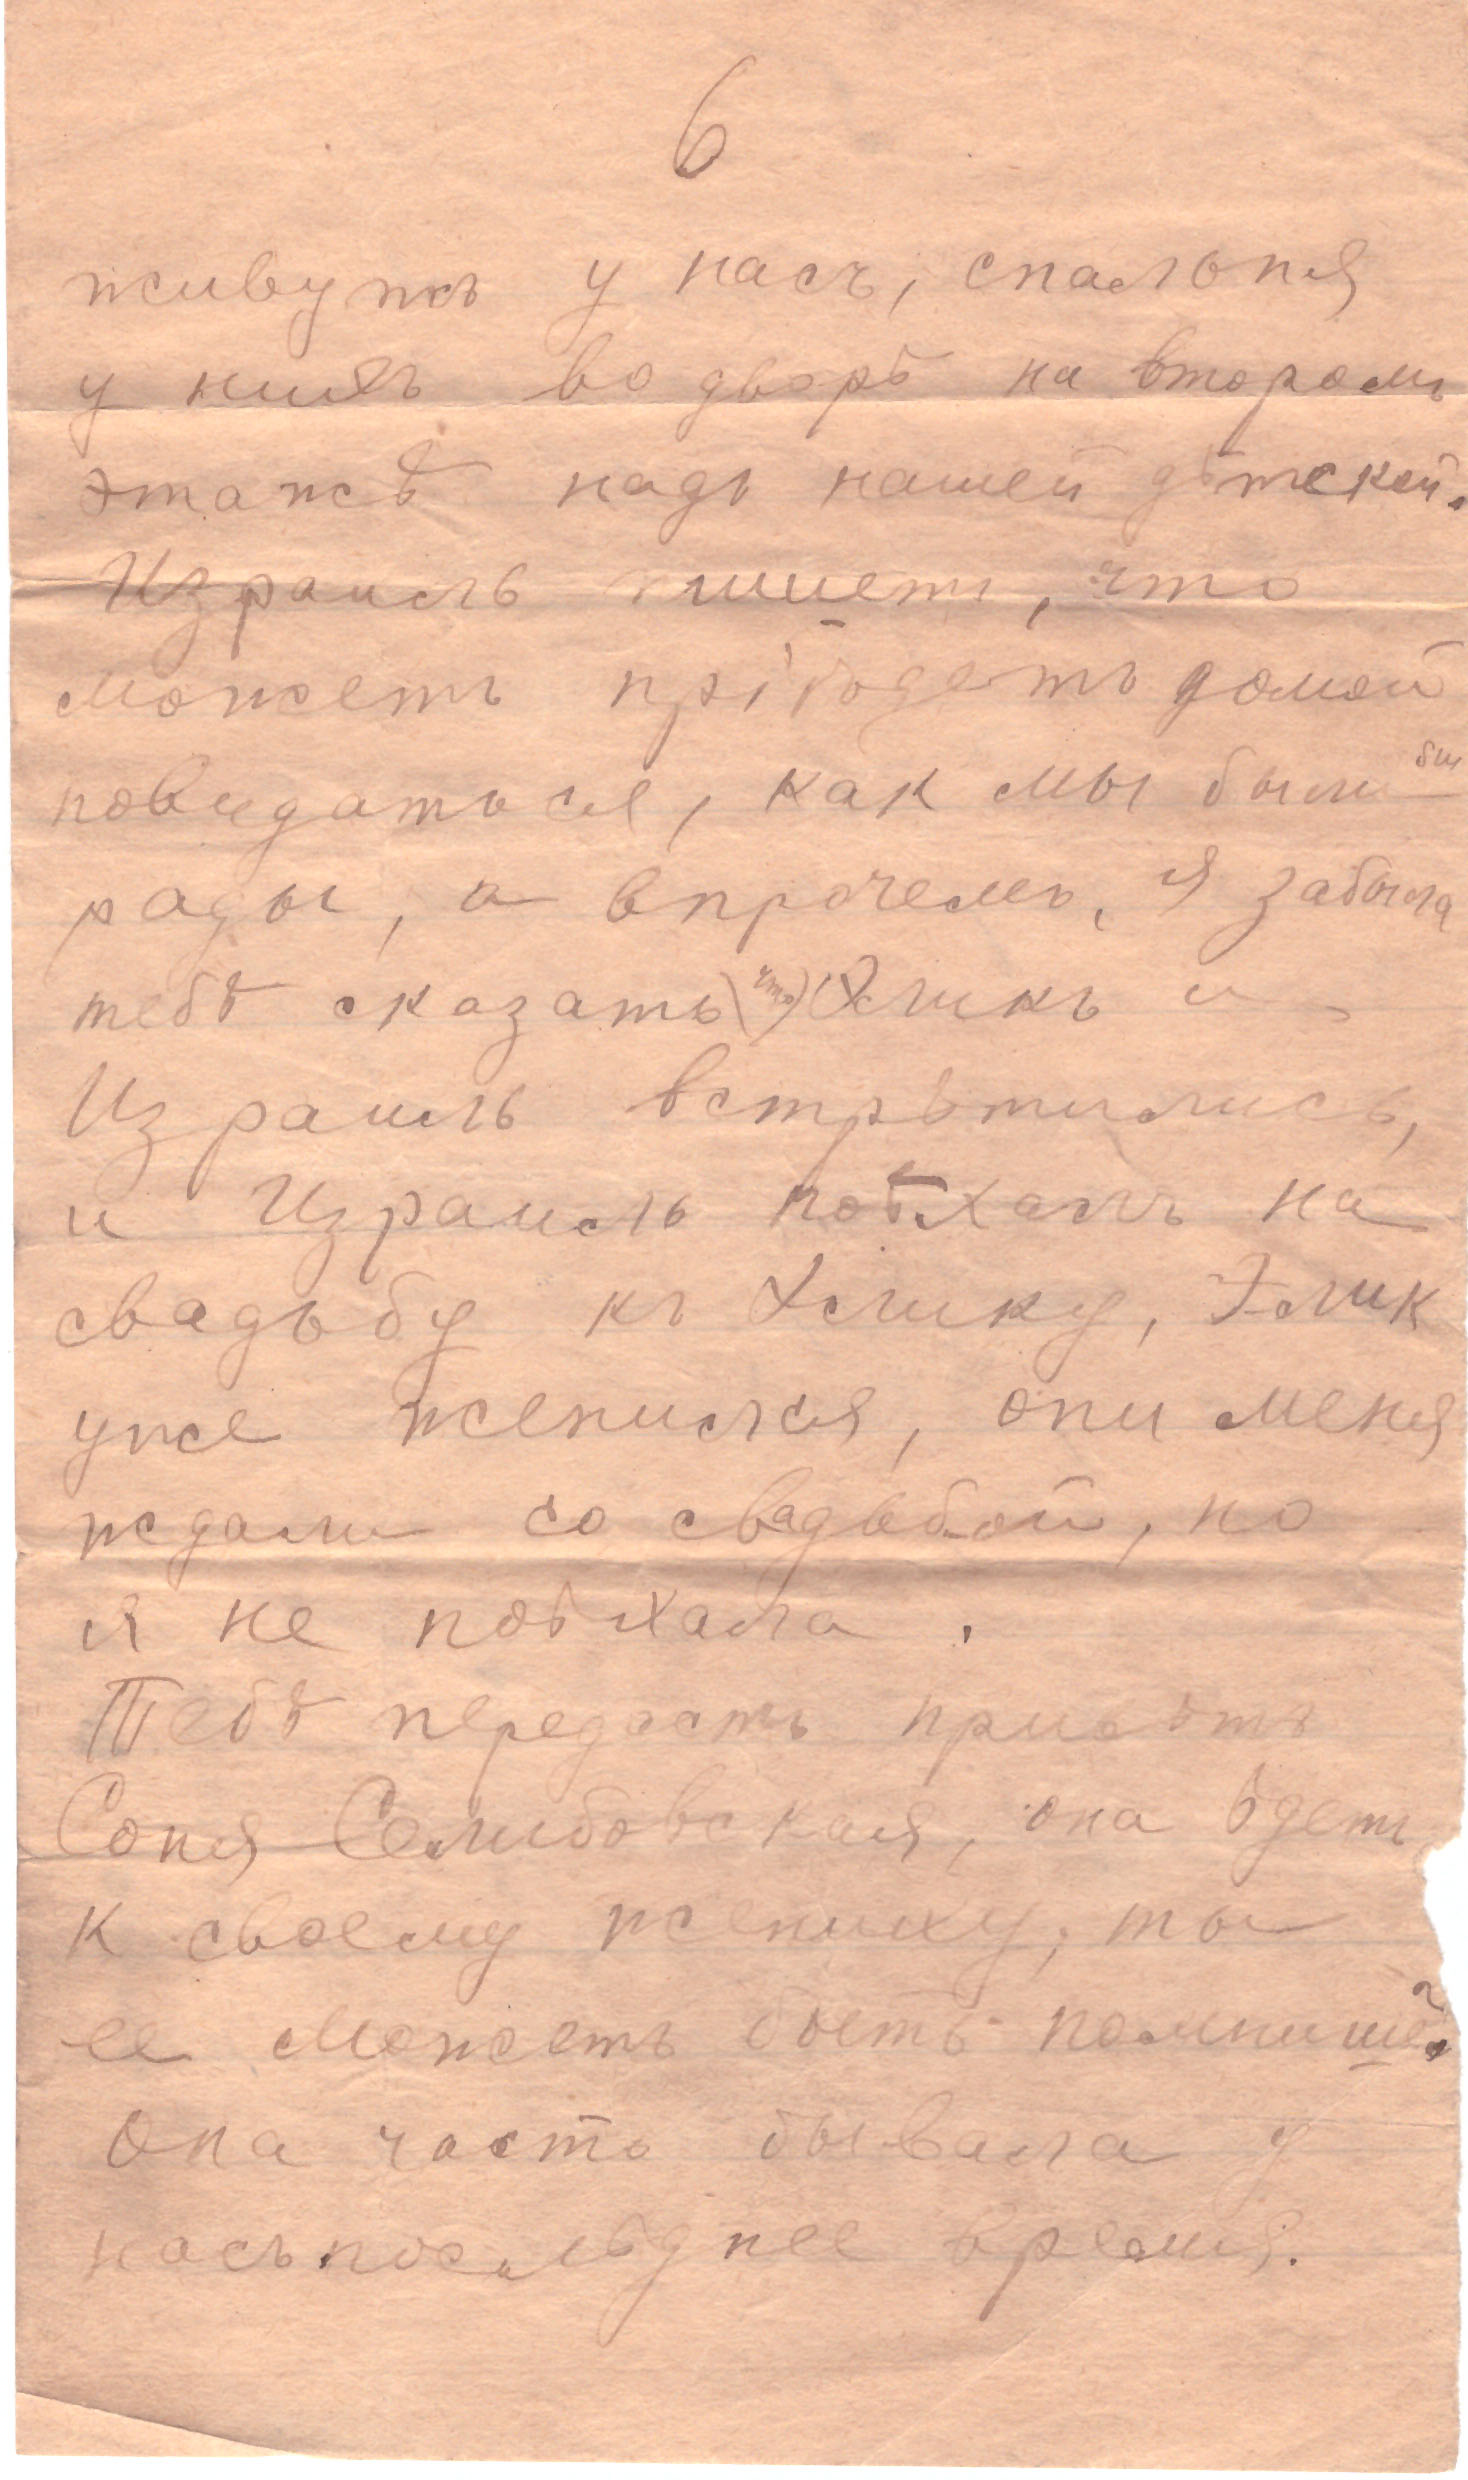 Letter to Poline from Tsillie July 5, 1920 p06